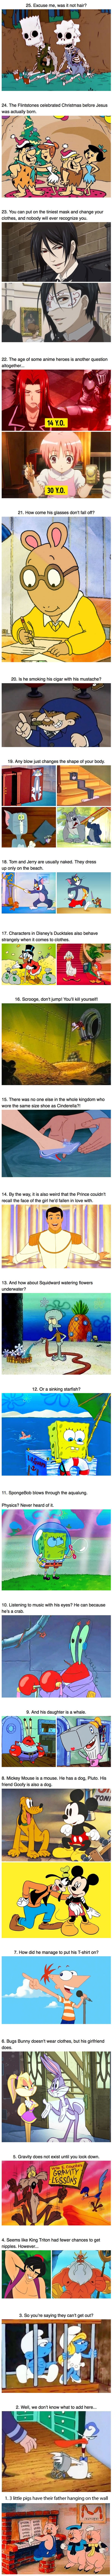 20+ Photos Prove That Cartoon Animations Have No Logic At All